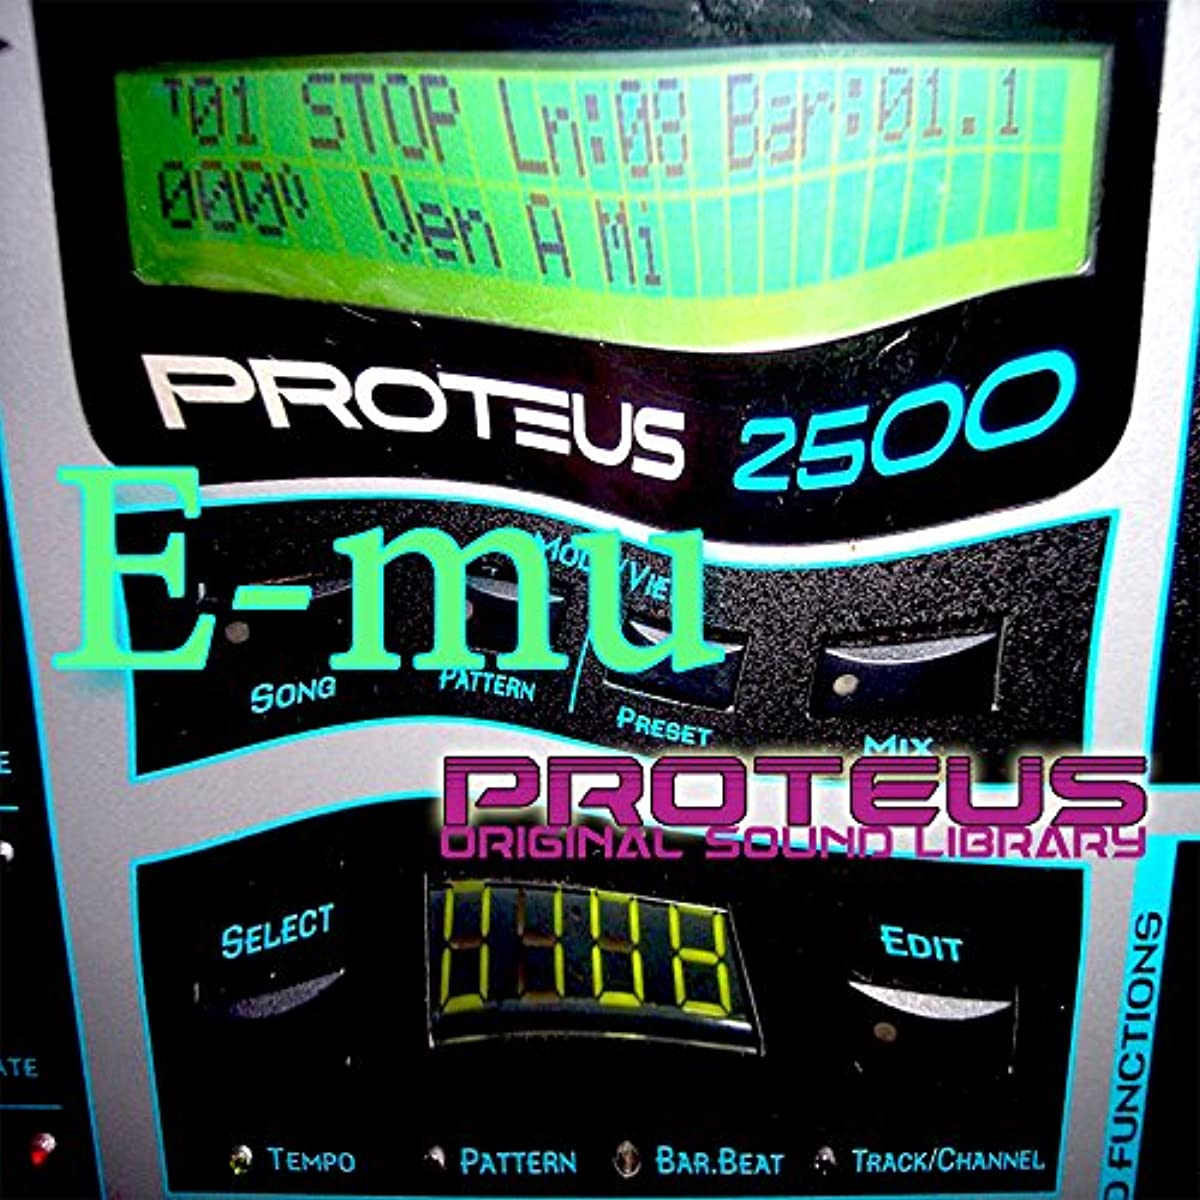 [해외] E-MU PROTEUS - THE KING OF DANCE MODULES - LARGE ORIGINAL 24BIT MULTI-LAYER WAVE/KONTAKT SAMPLES/LOOPS STUDIO LIBRARY ON DVD OR DOWNLOAD